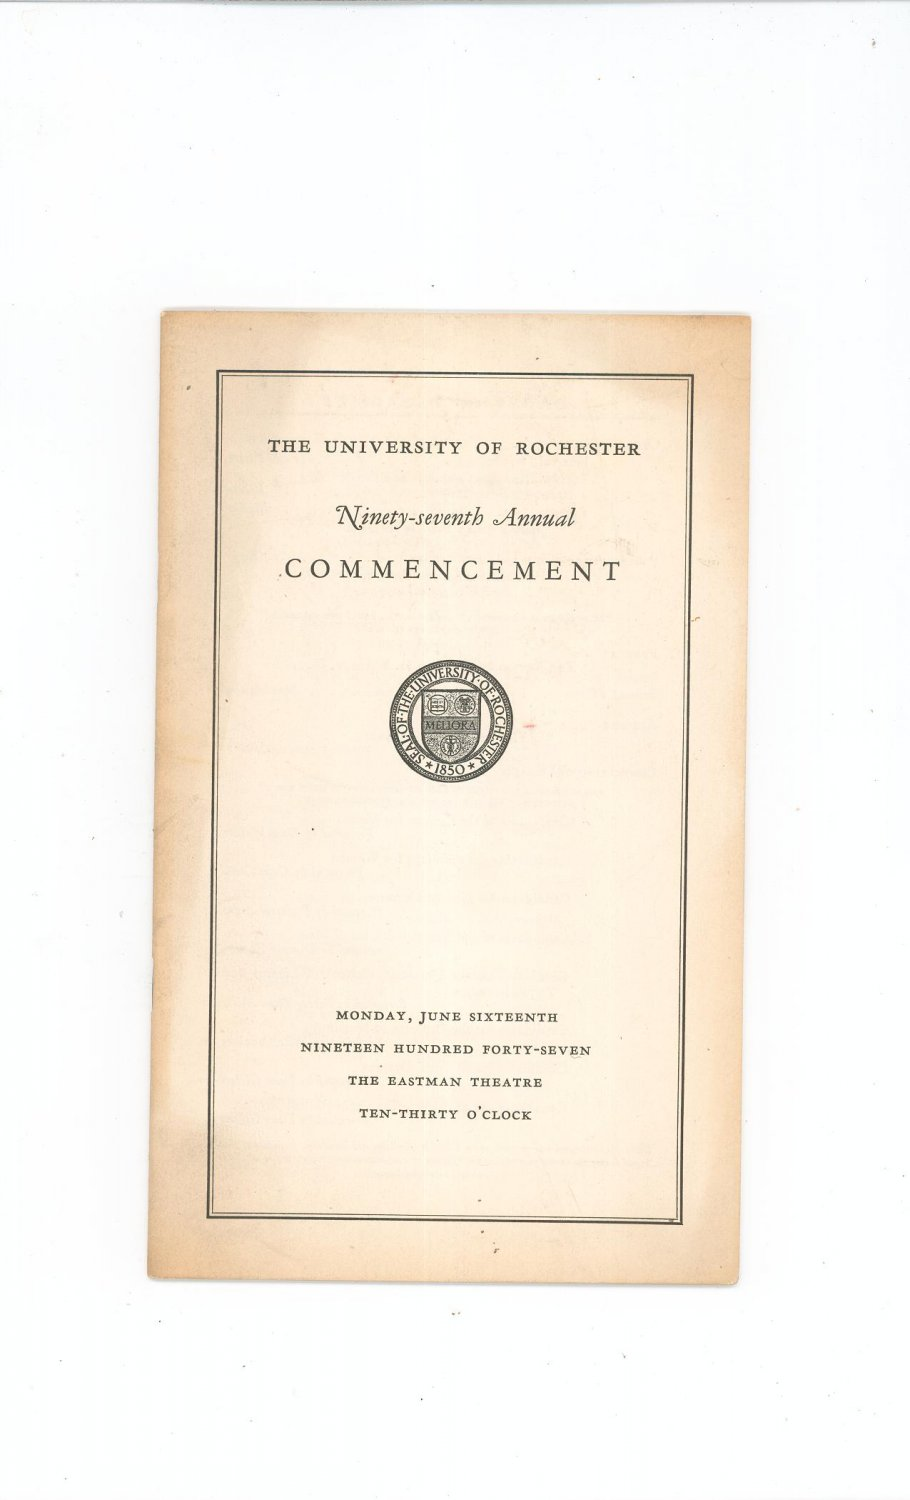 University Of Rochester 97th Annual Commencement Program 1947